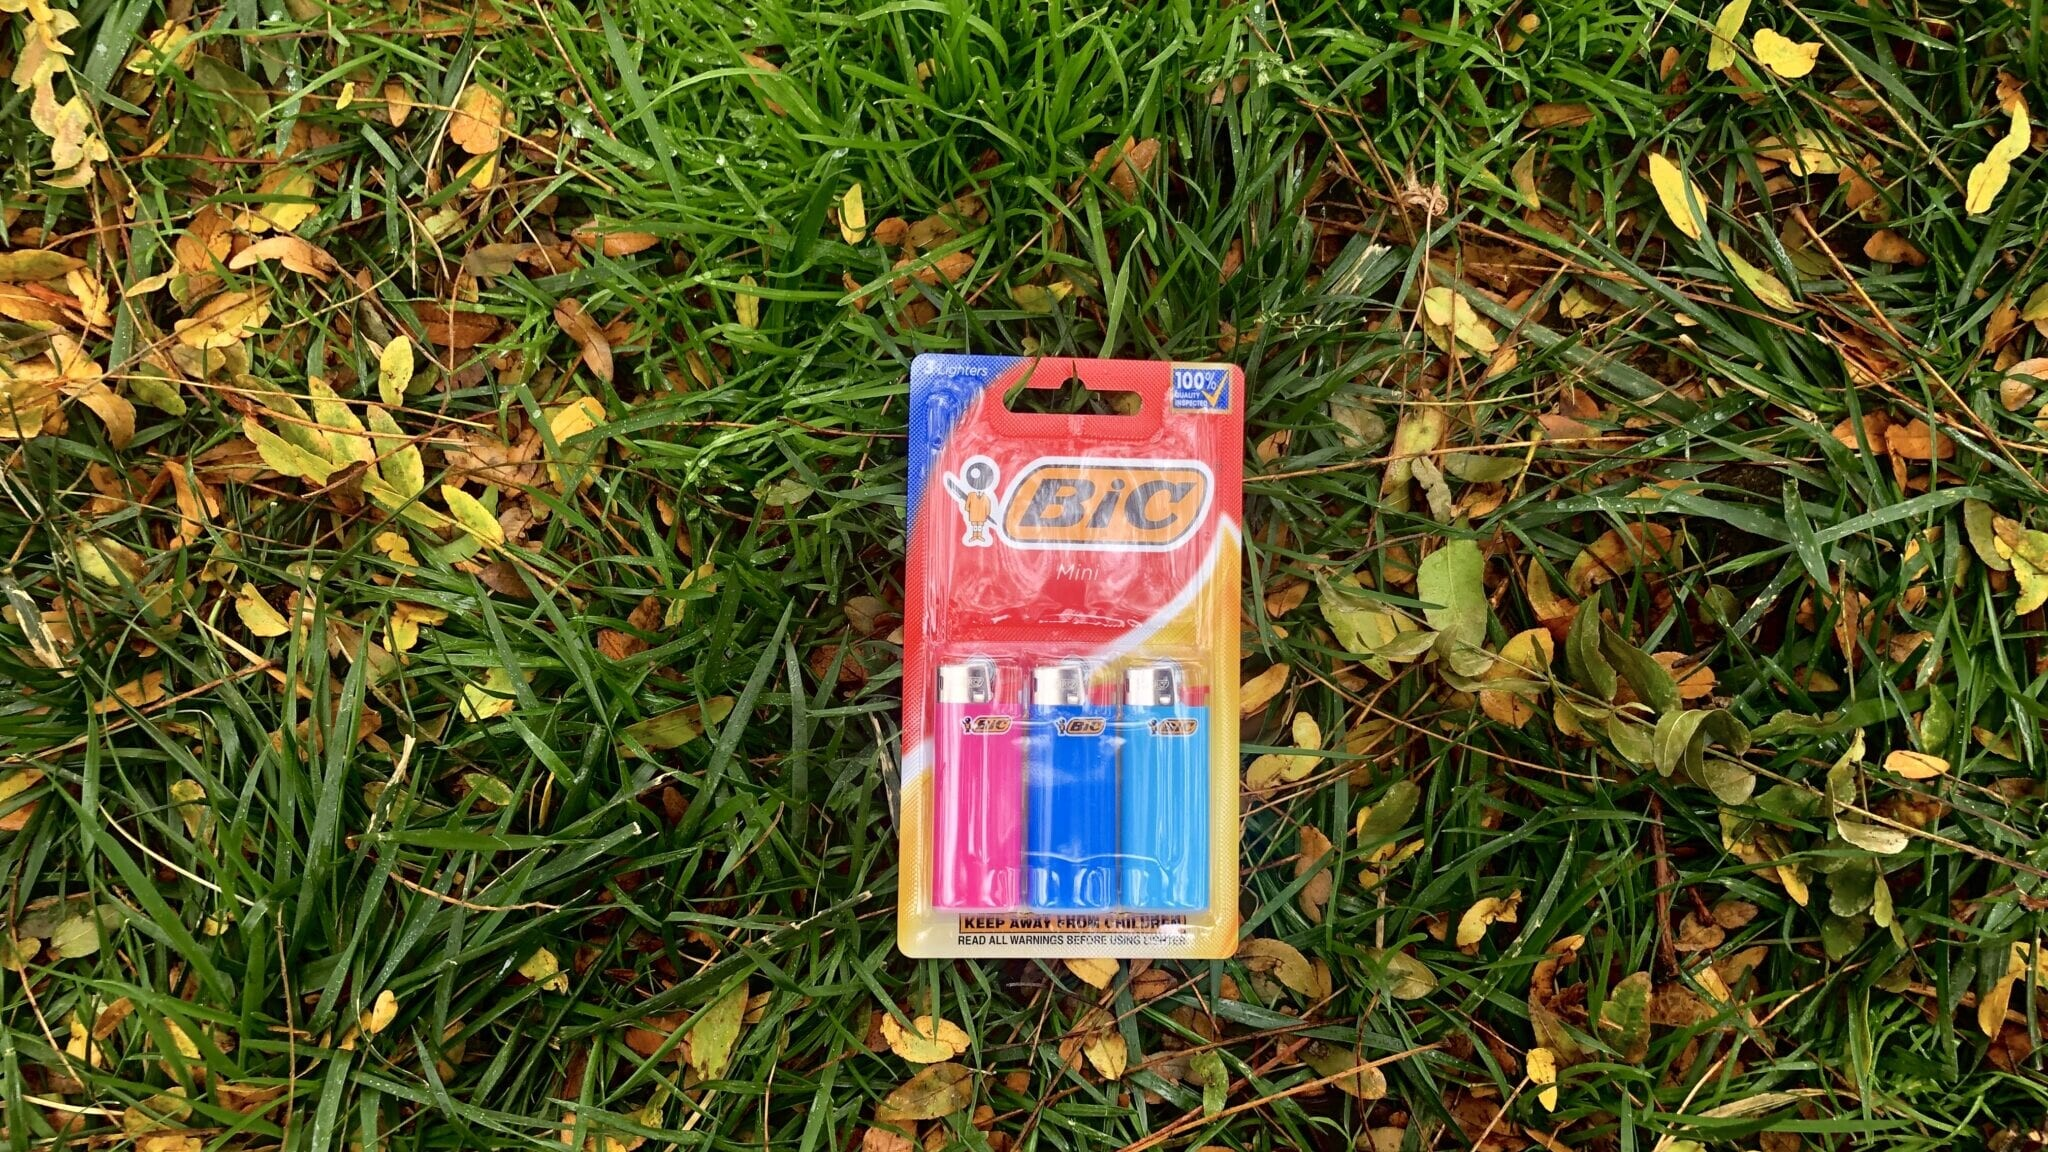 A pack of 3 BIC Mini lighters in the grass.